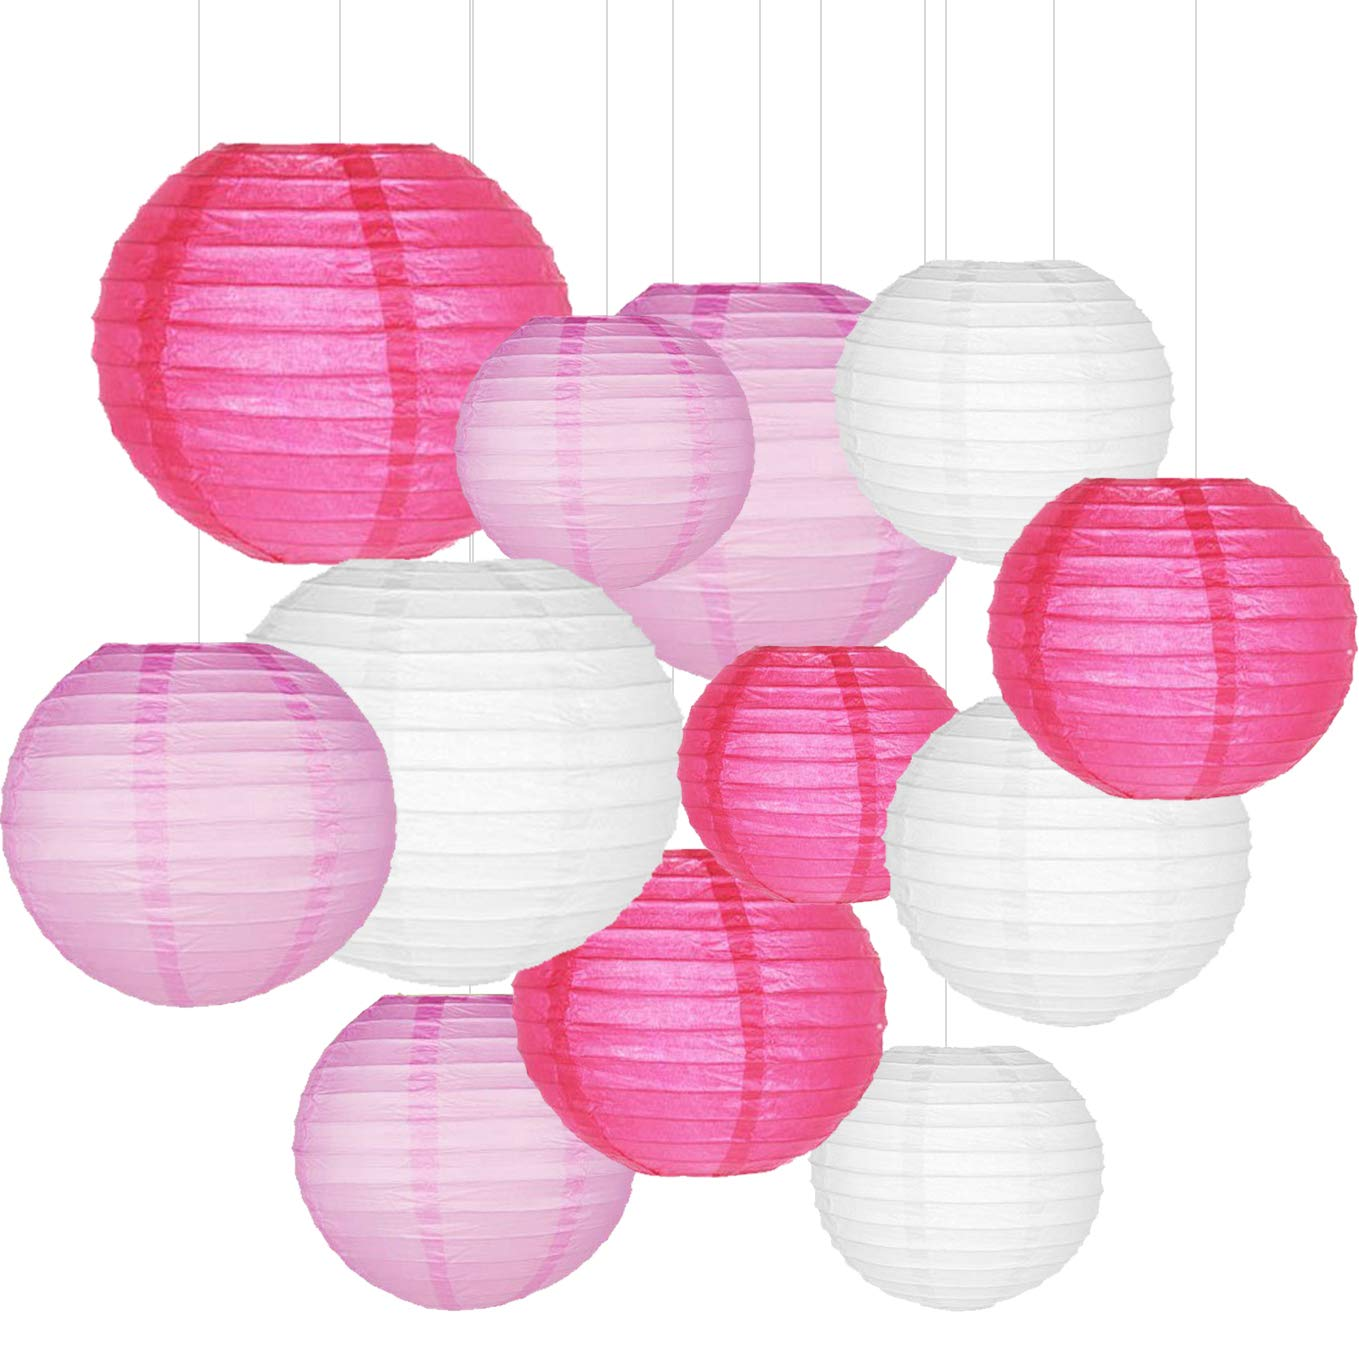 Sonnis Paper Lanterns 12'' 10'' 8'' 6'' Round lanterns for Birthday Wedding Baby Showers Party Decorations pink (12pack)